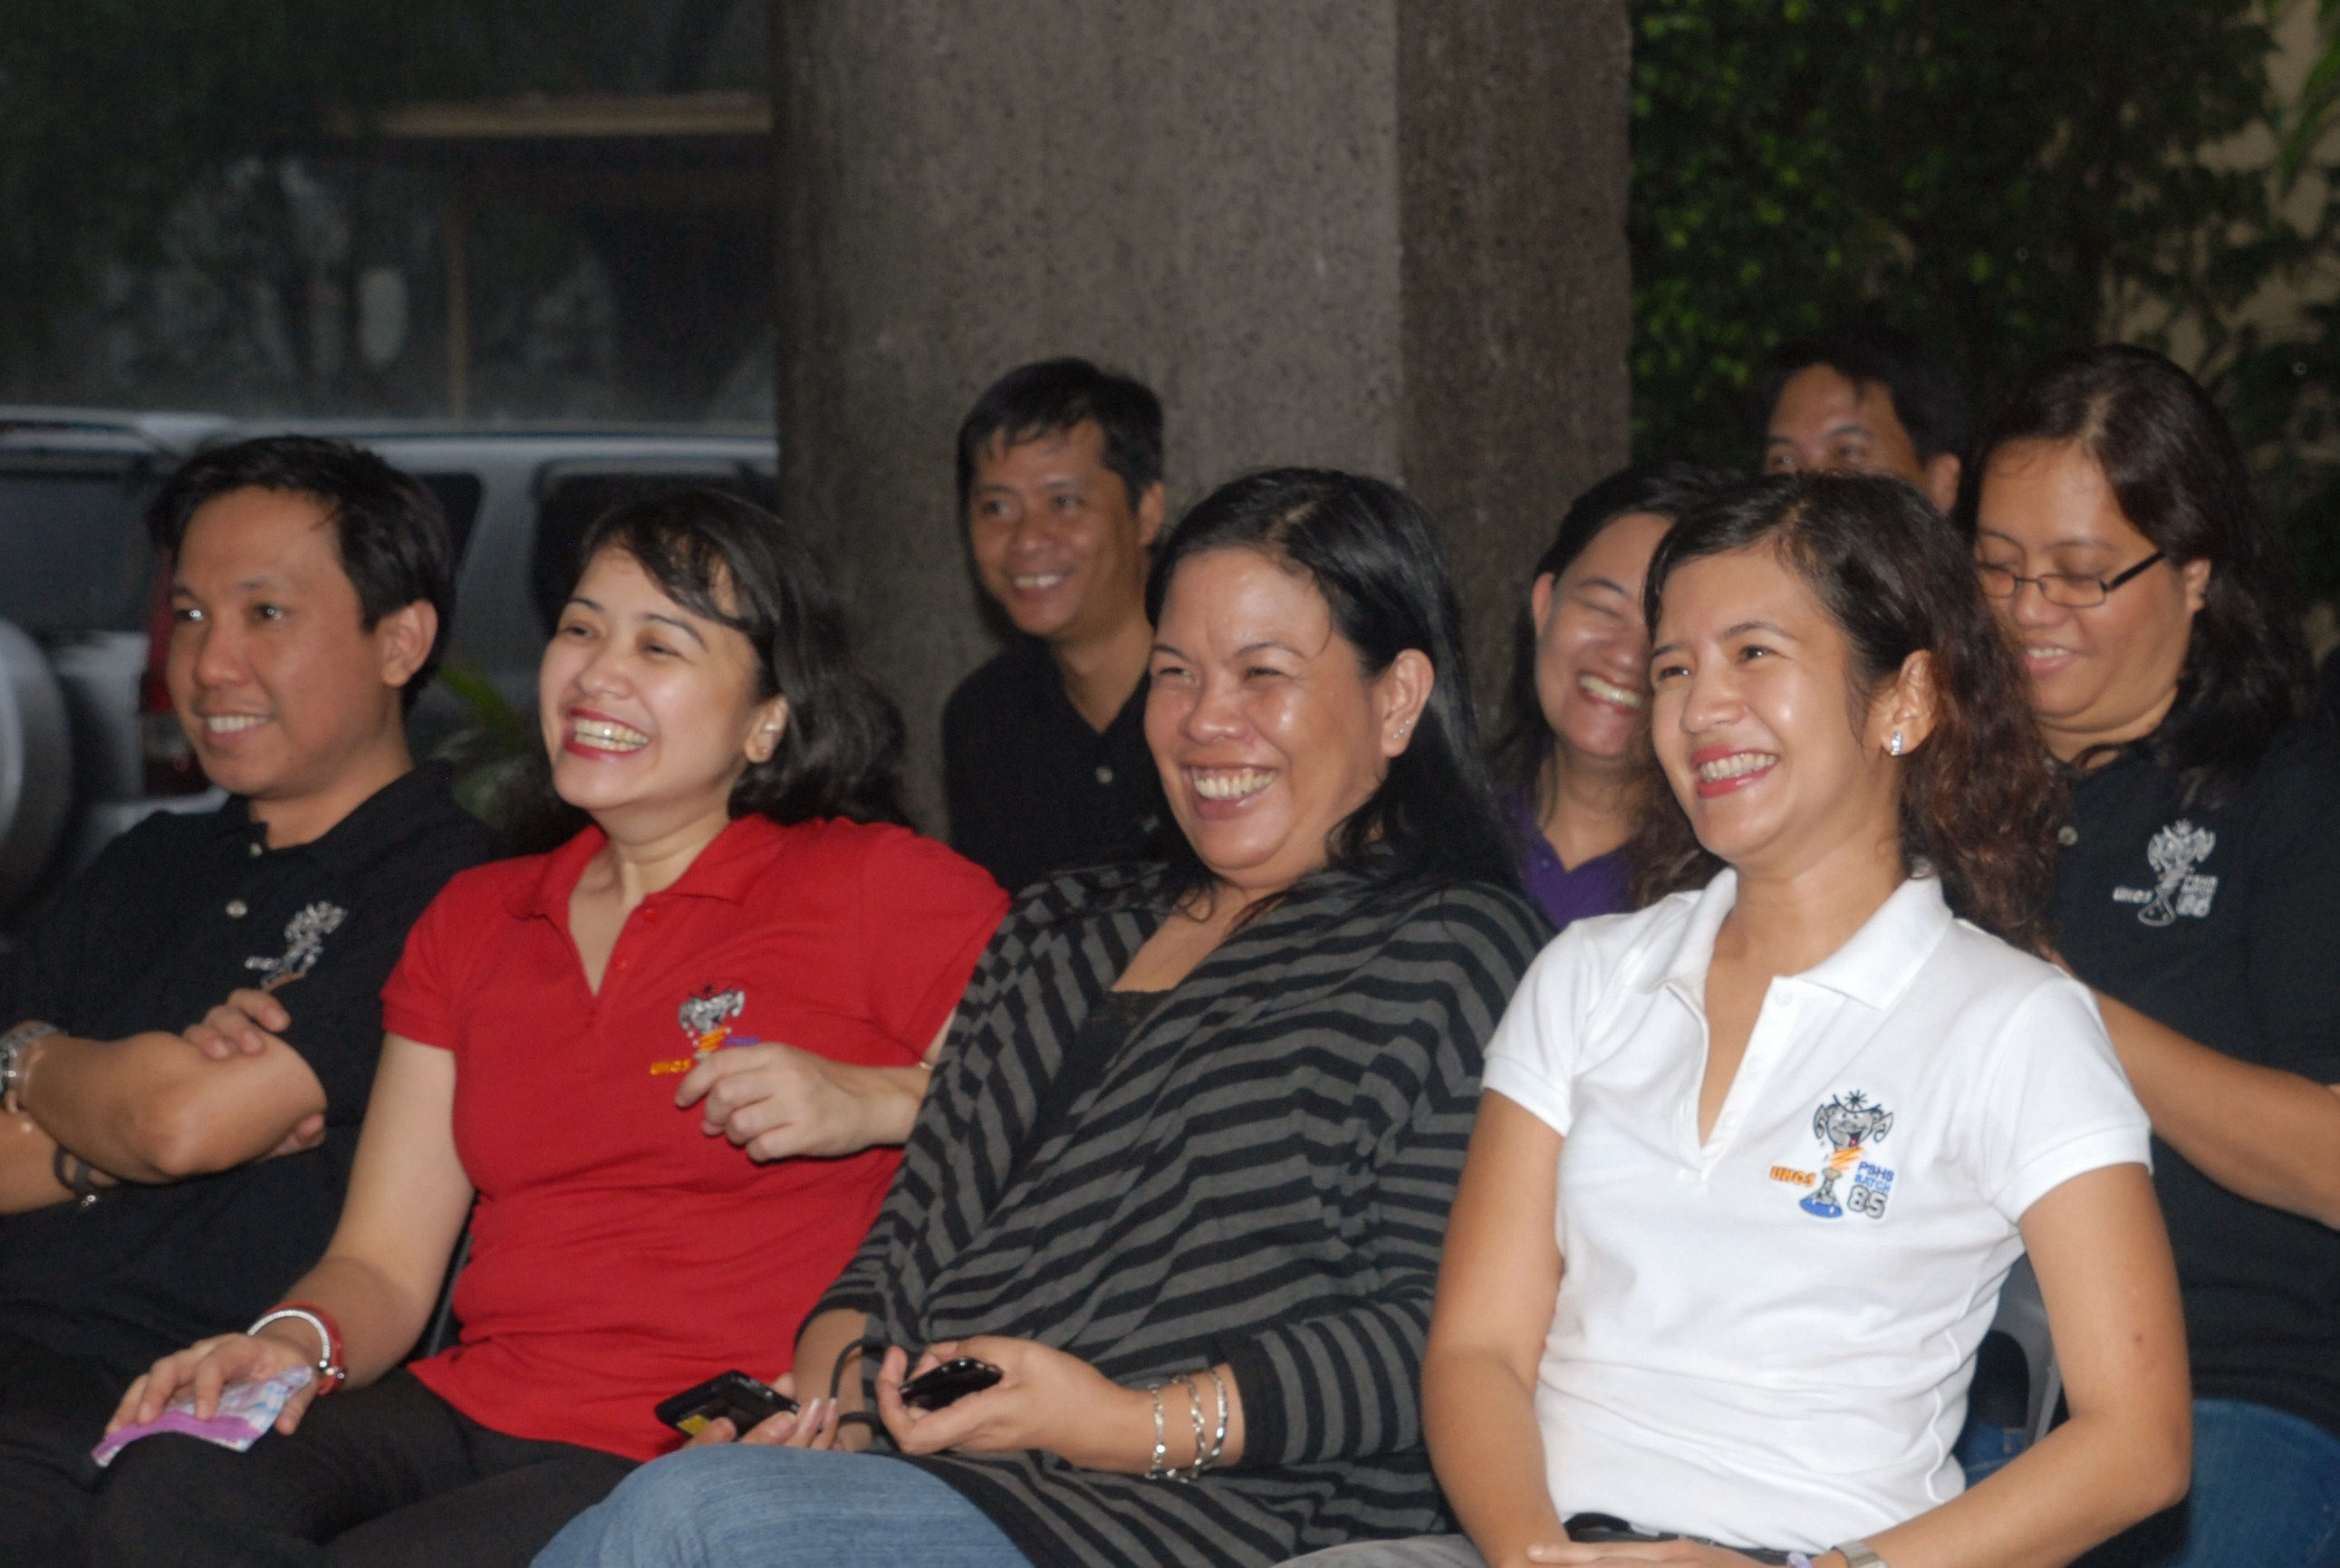 Alumni audience